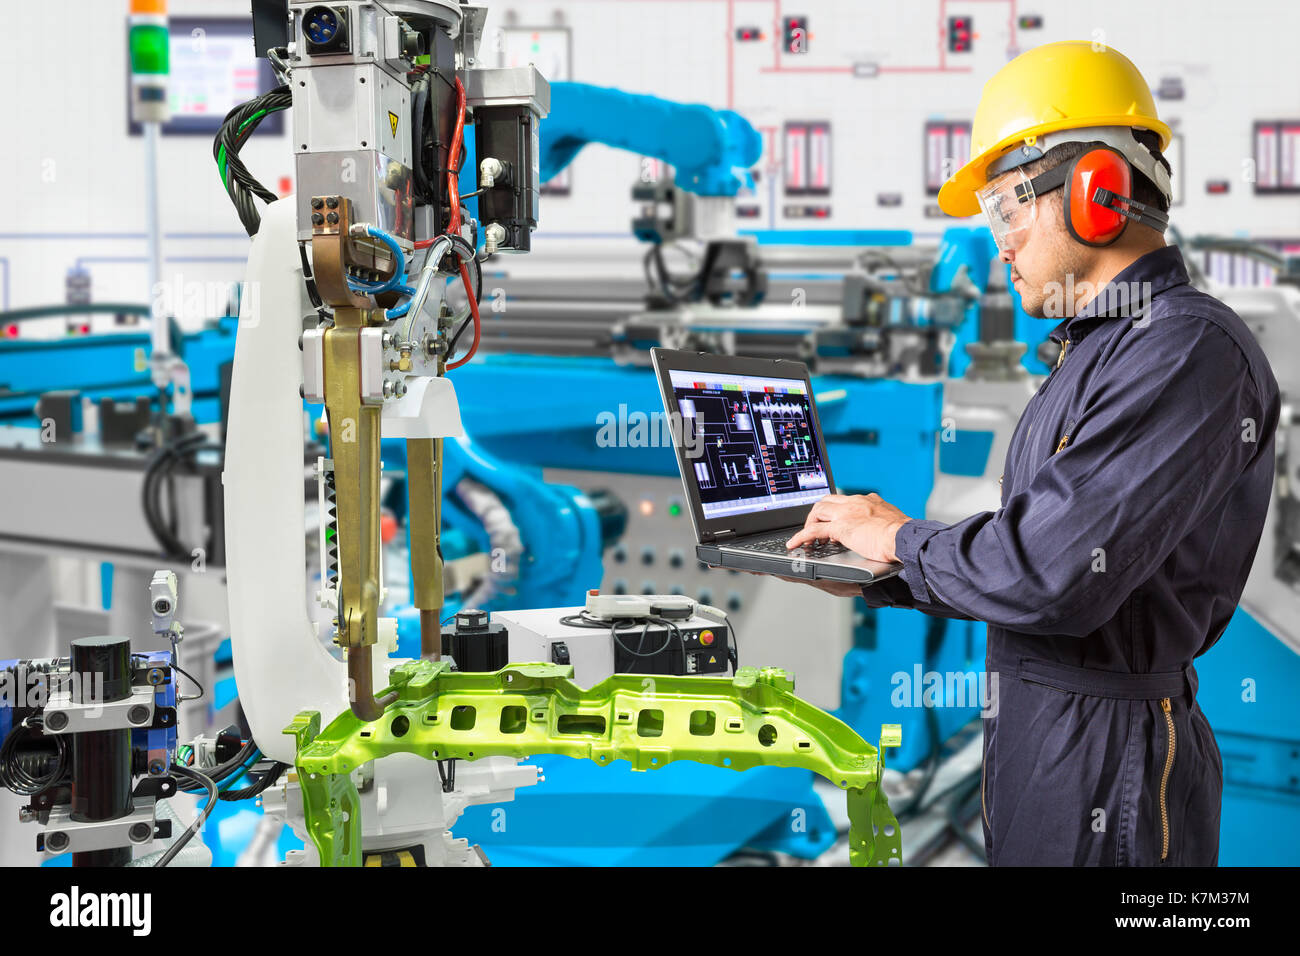 Sterling Heights Chrysler >> Robotic Car Manufacturing Stock Photos & Robotic Car Manufacturing Stock Images - Alamy